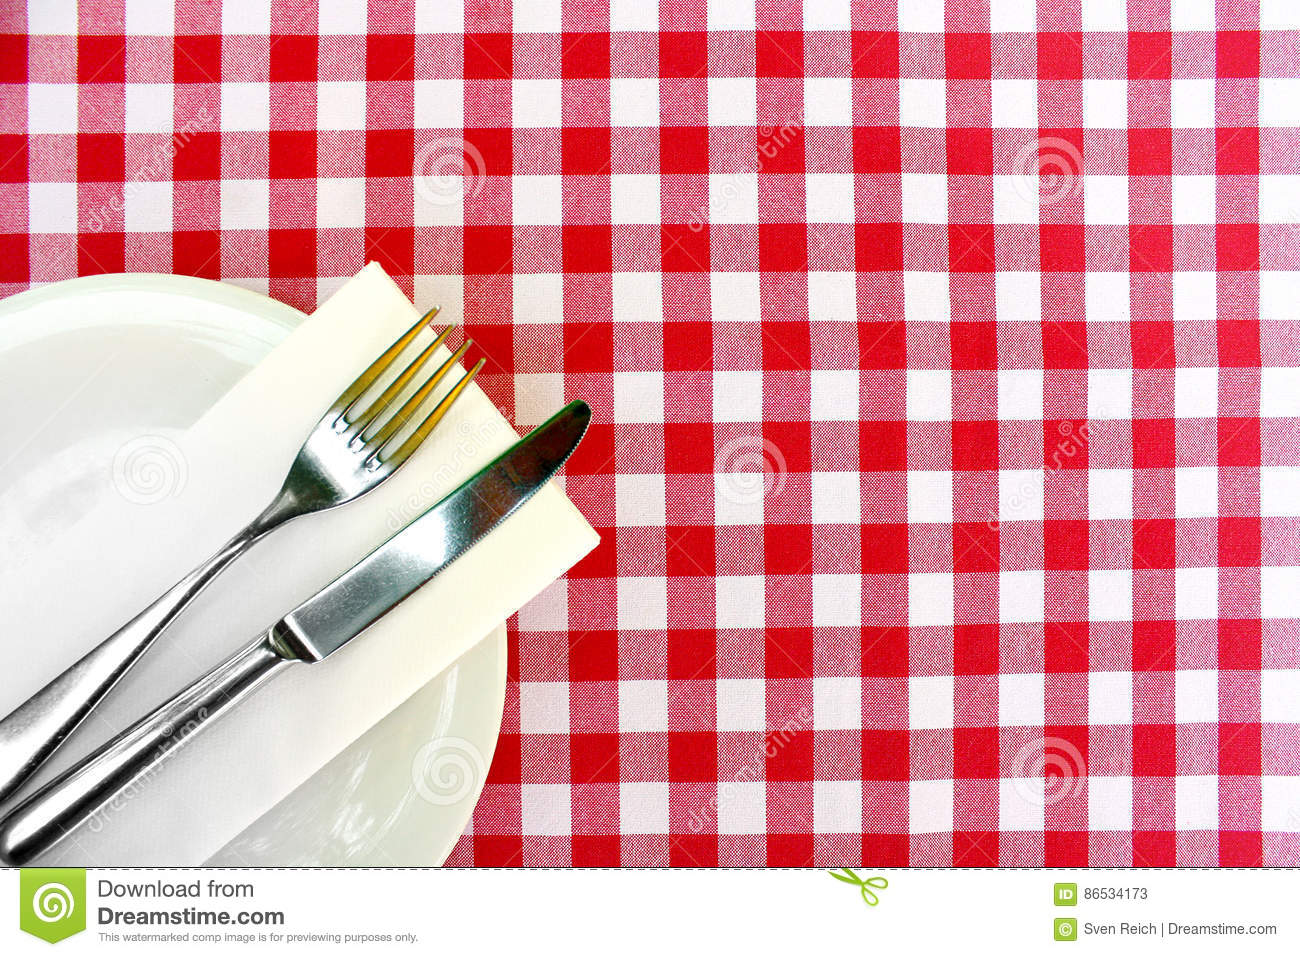 cutlery on a checkered table cloth stock image image of menu meal